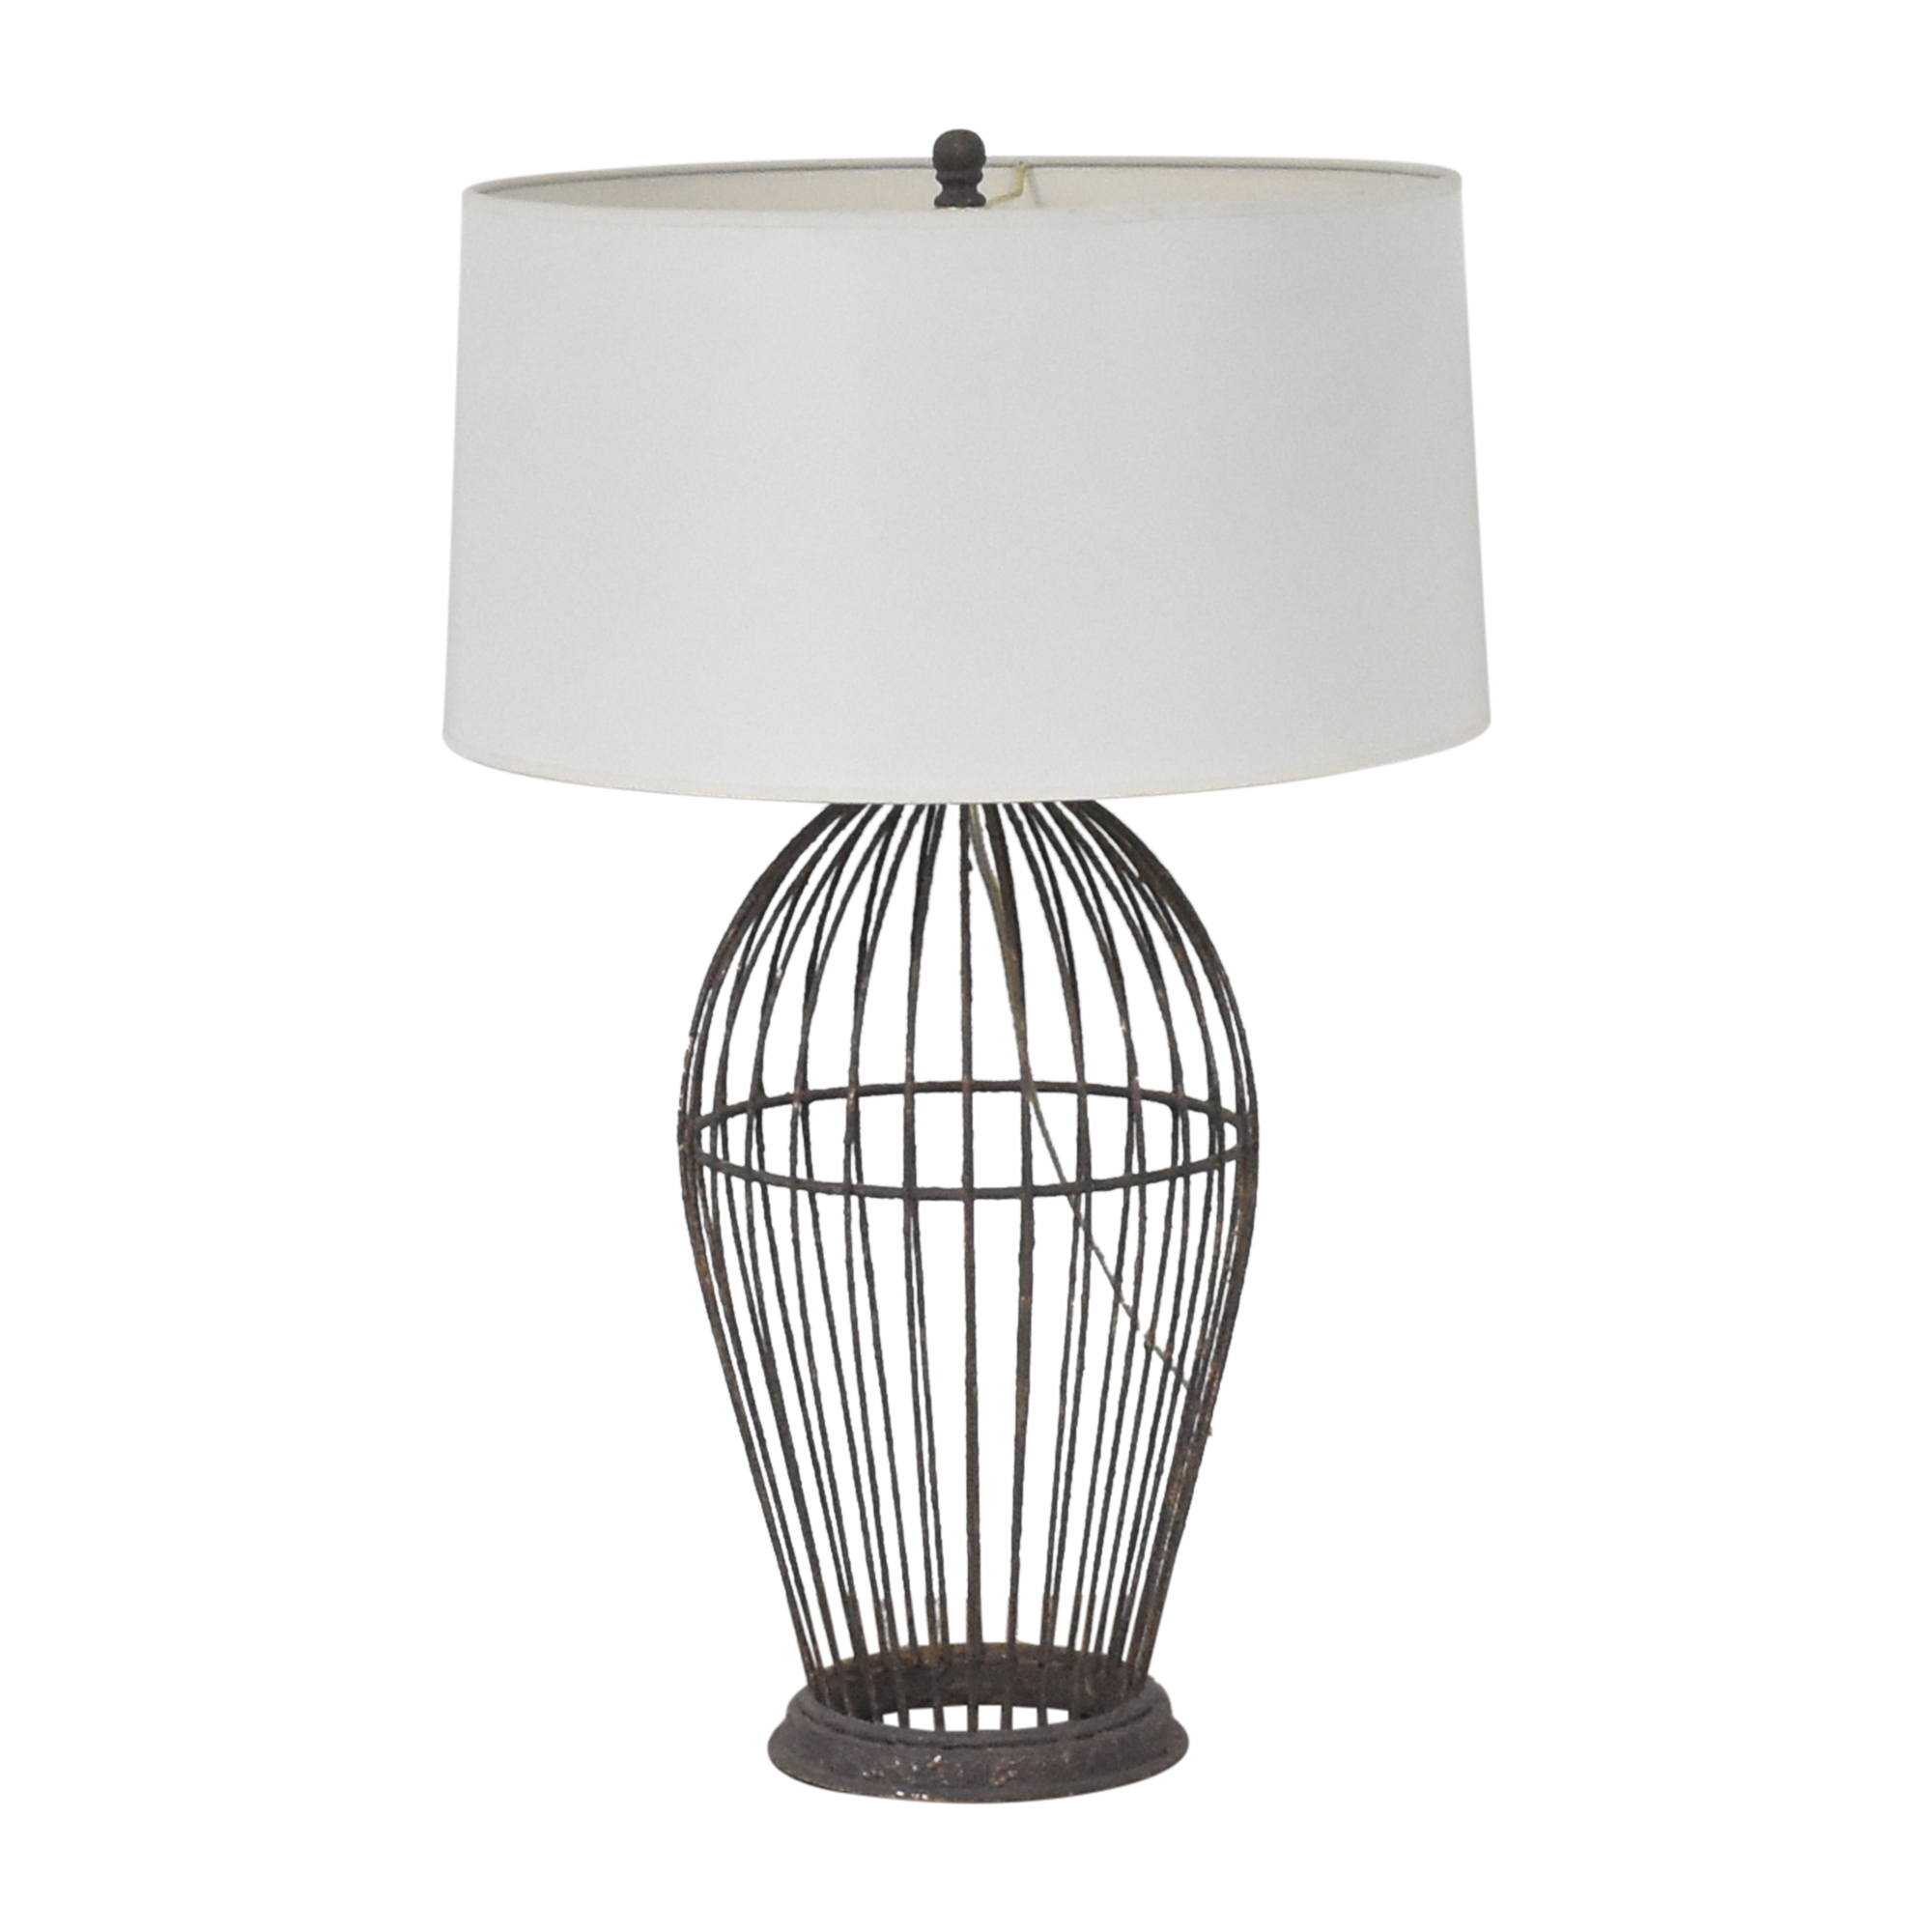 Ethan Allen Ethan Allen Brody Open Cage Table Lamp white & black